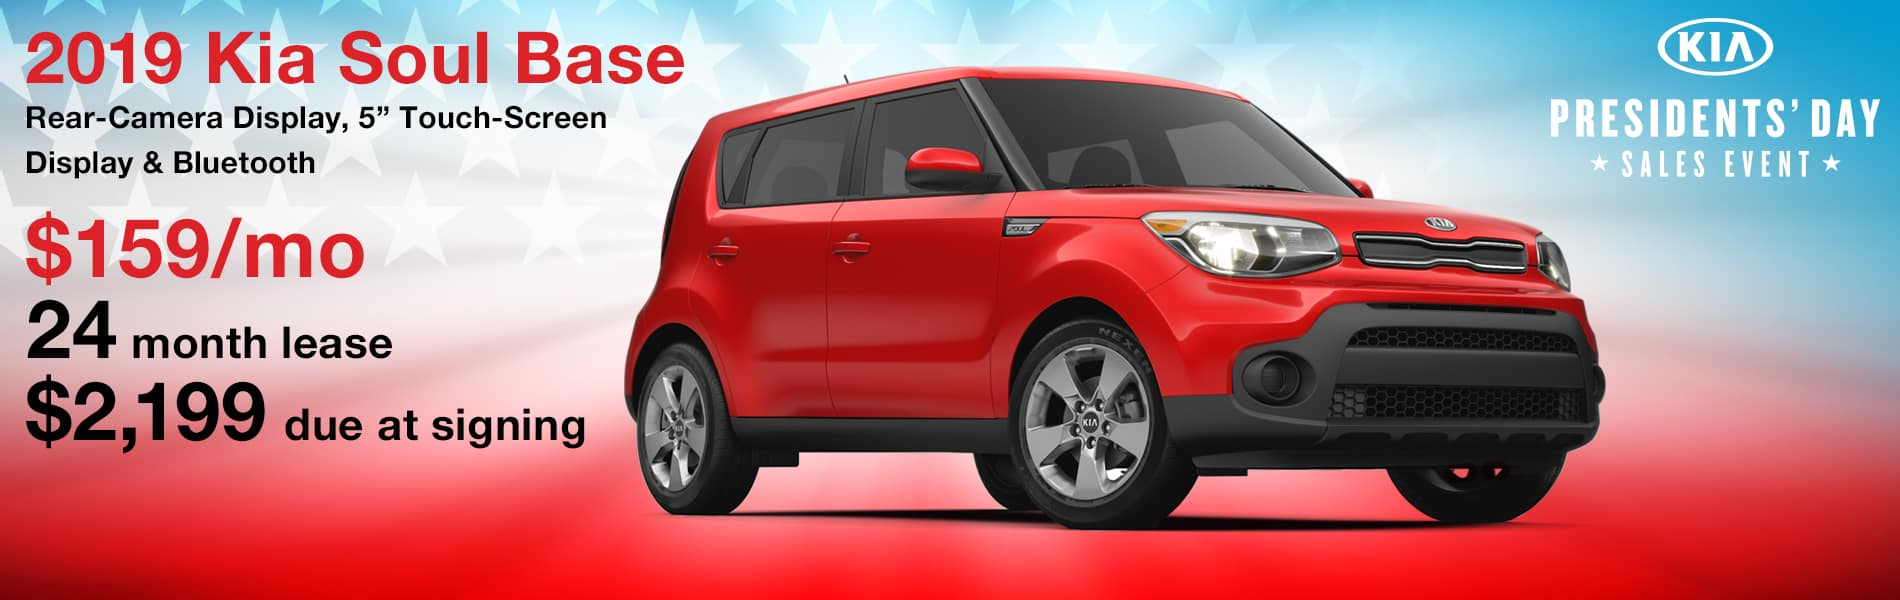 Lease a 2019 Kia Soul Base for $159 per month with $2,199 due at signing